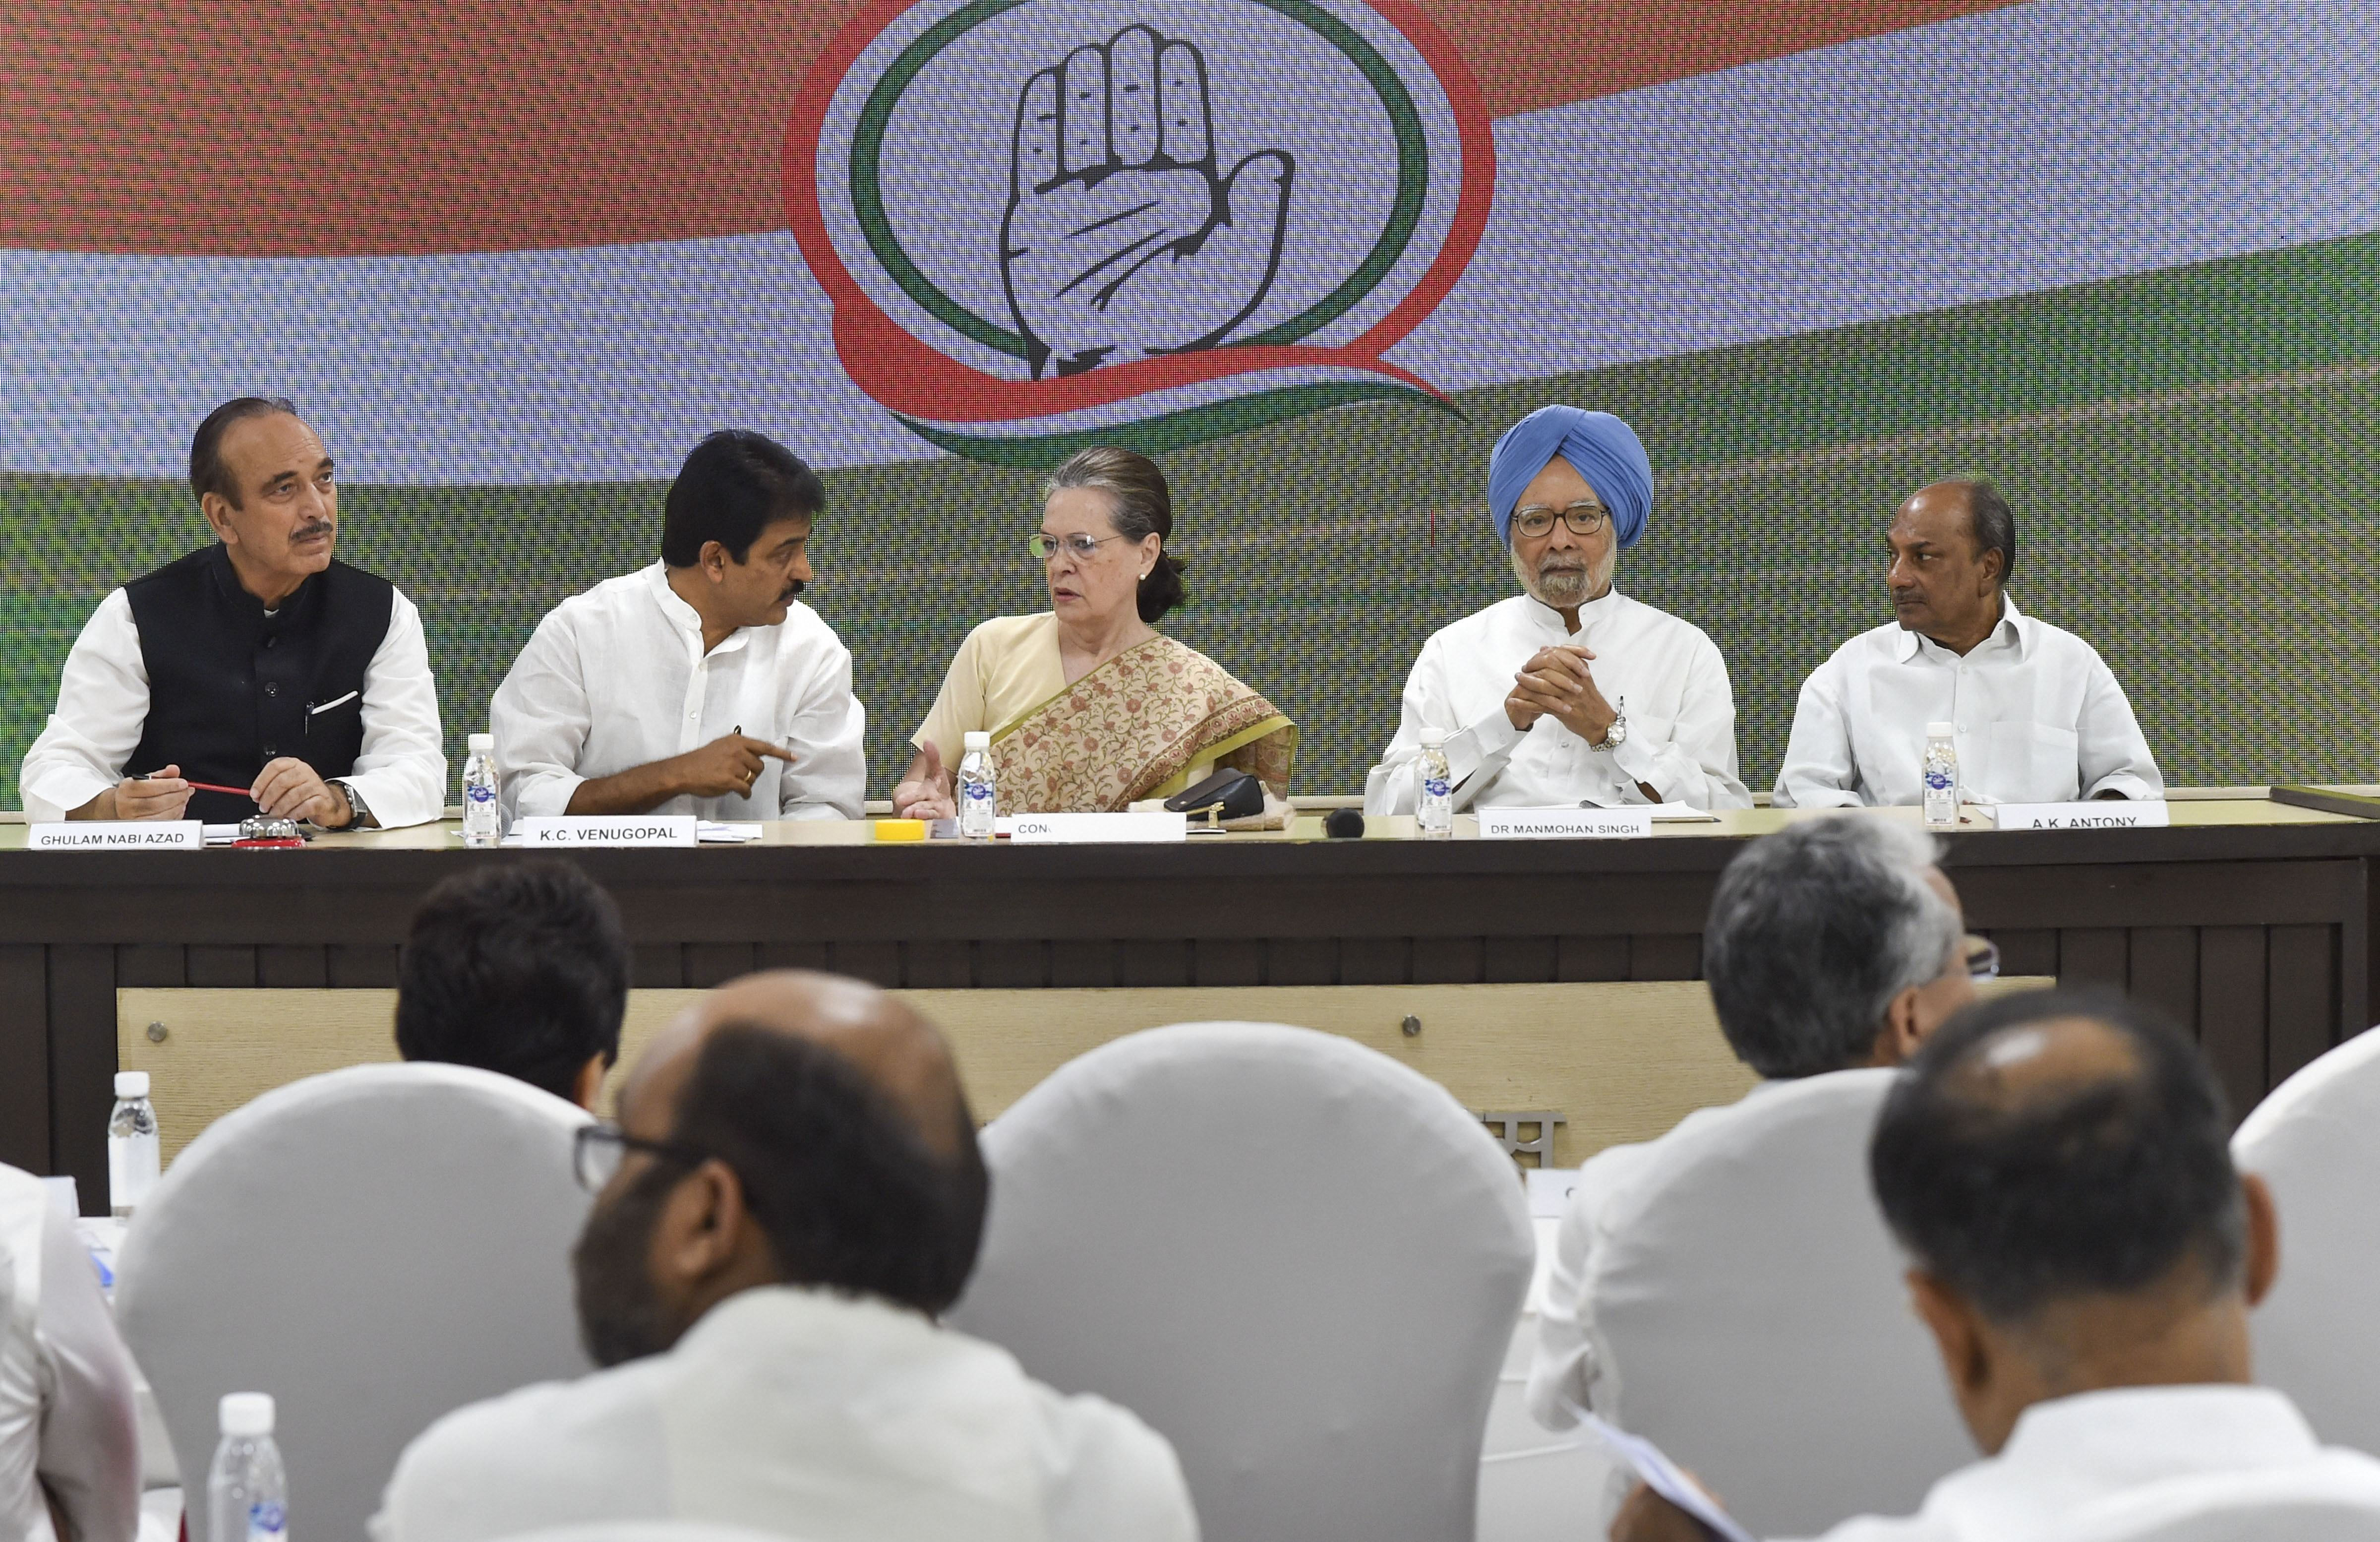 Congress president Sonia Gandhi, flanked by former prime minister Manmohan Singh and senior leaders Ghulam Nabi Azad, AK Antony and KC Venugopal, chairs a party meeting to discuss plans for the 150th birth anniversary of Mahatma Gandhi, at AICC HQ in New Delhi on Thursday, September 12, 2019.